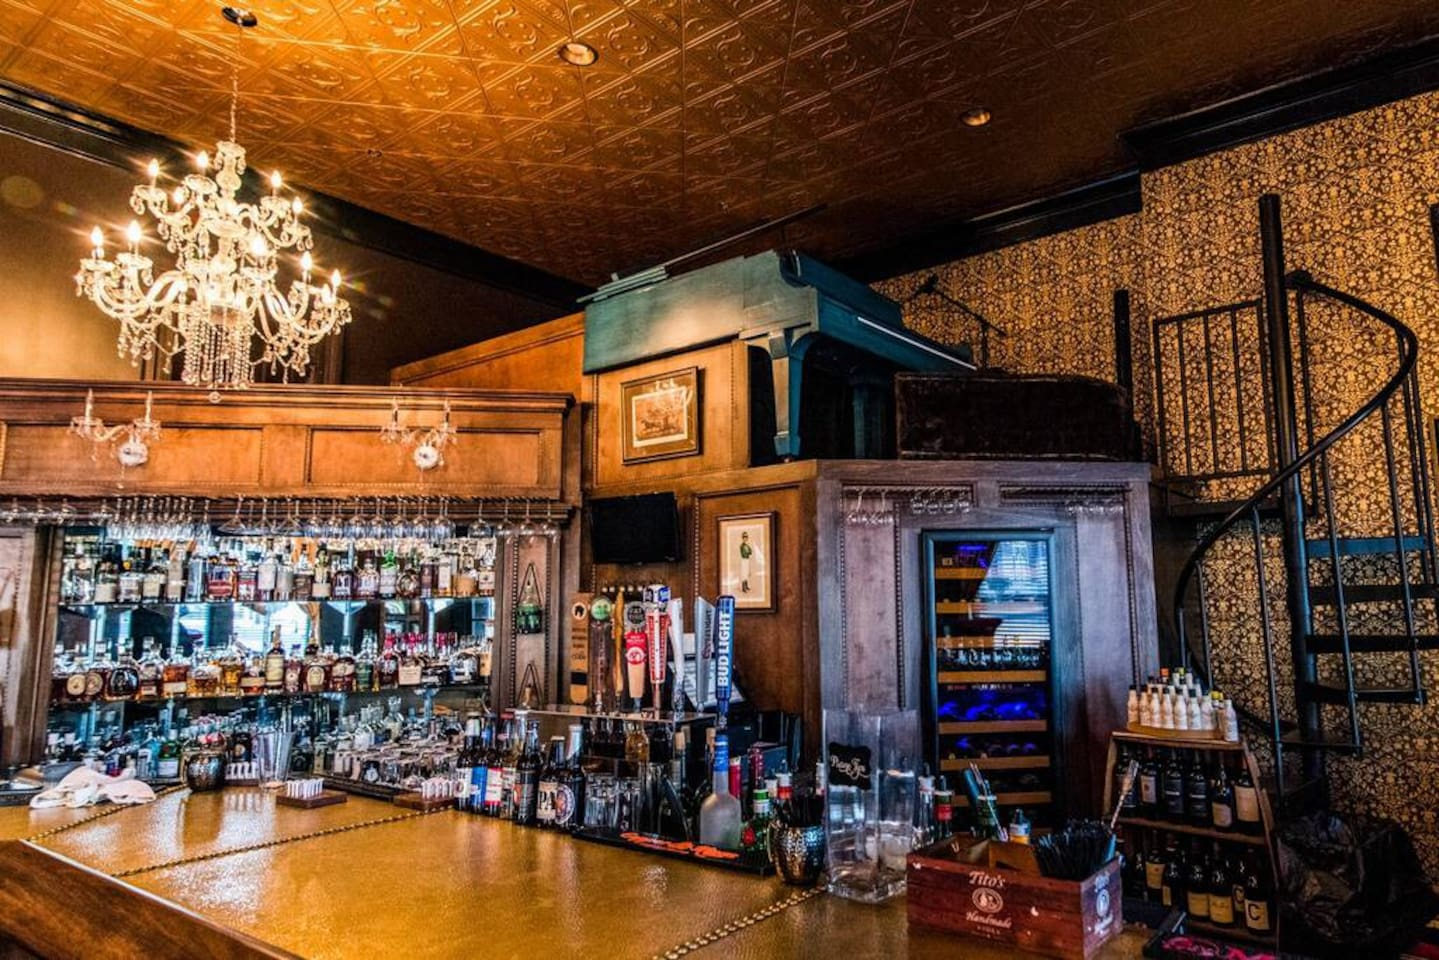 The Derby Piano Bar